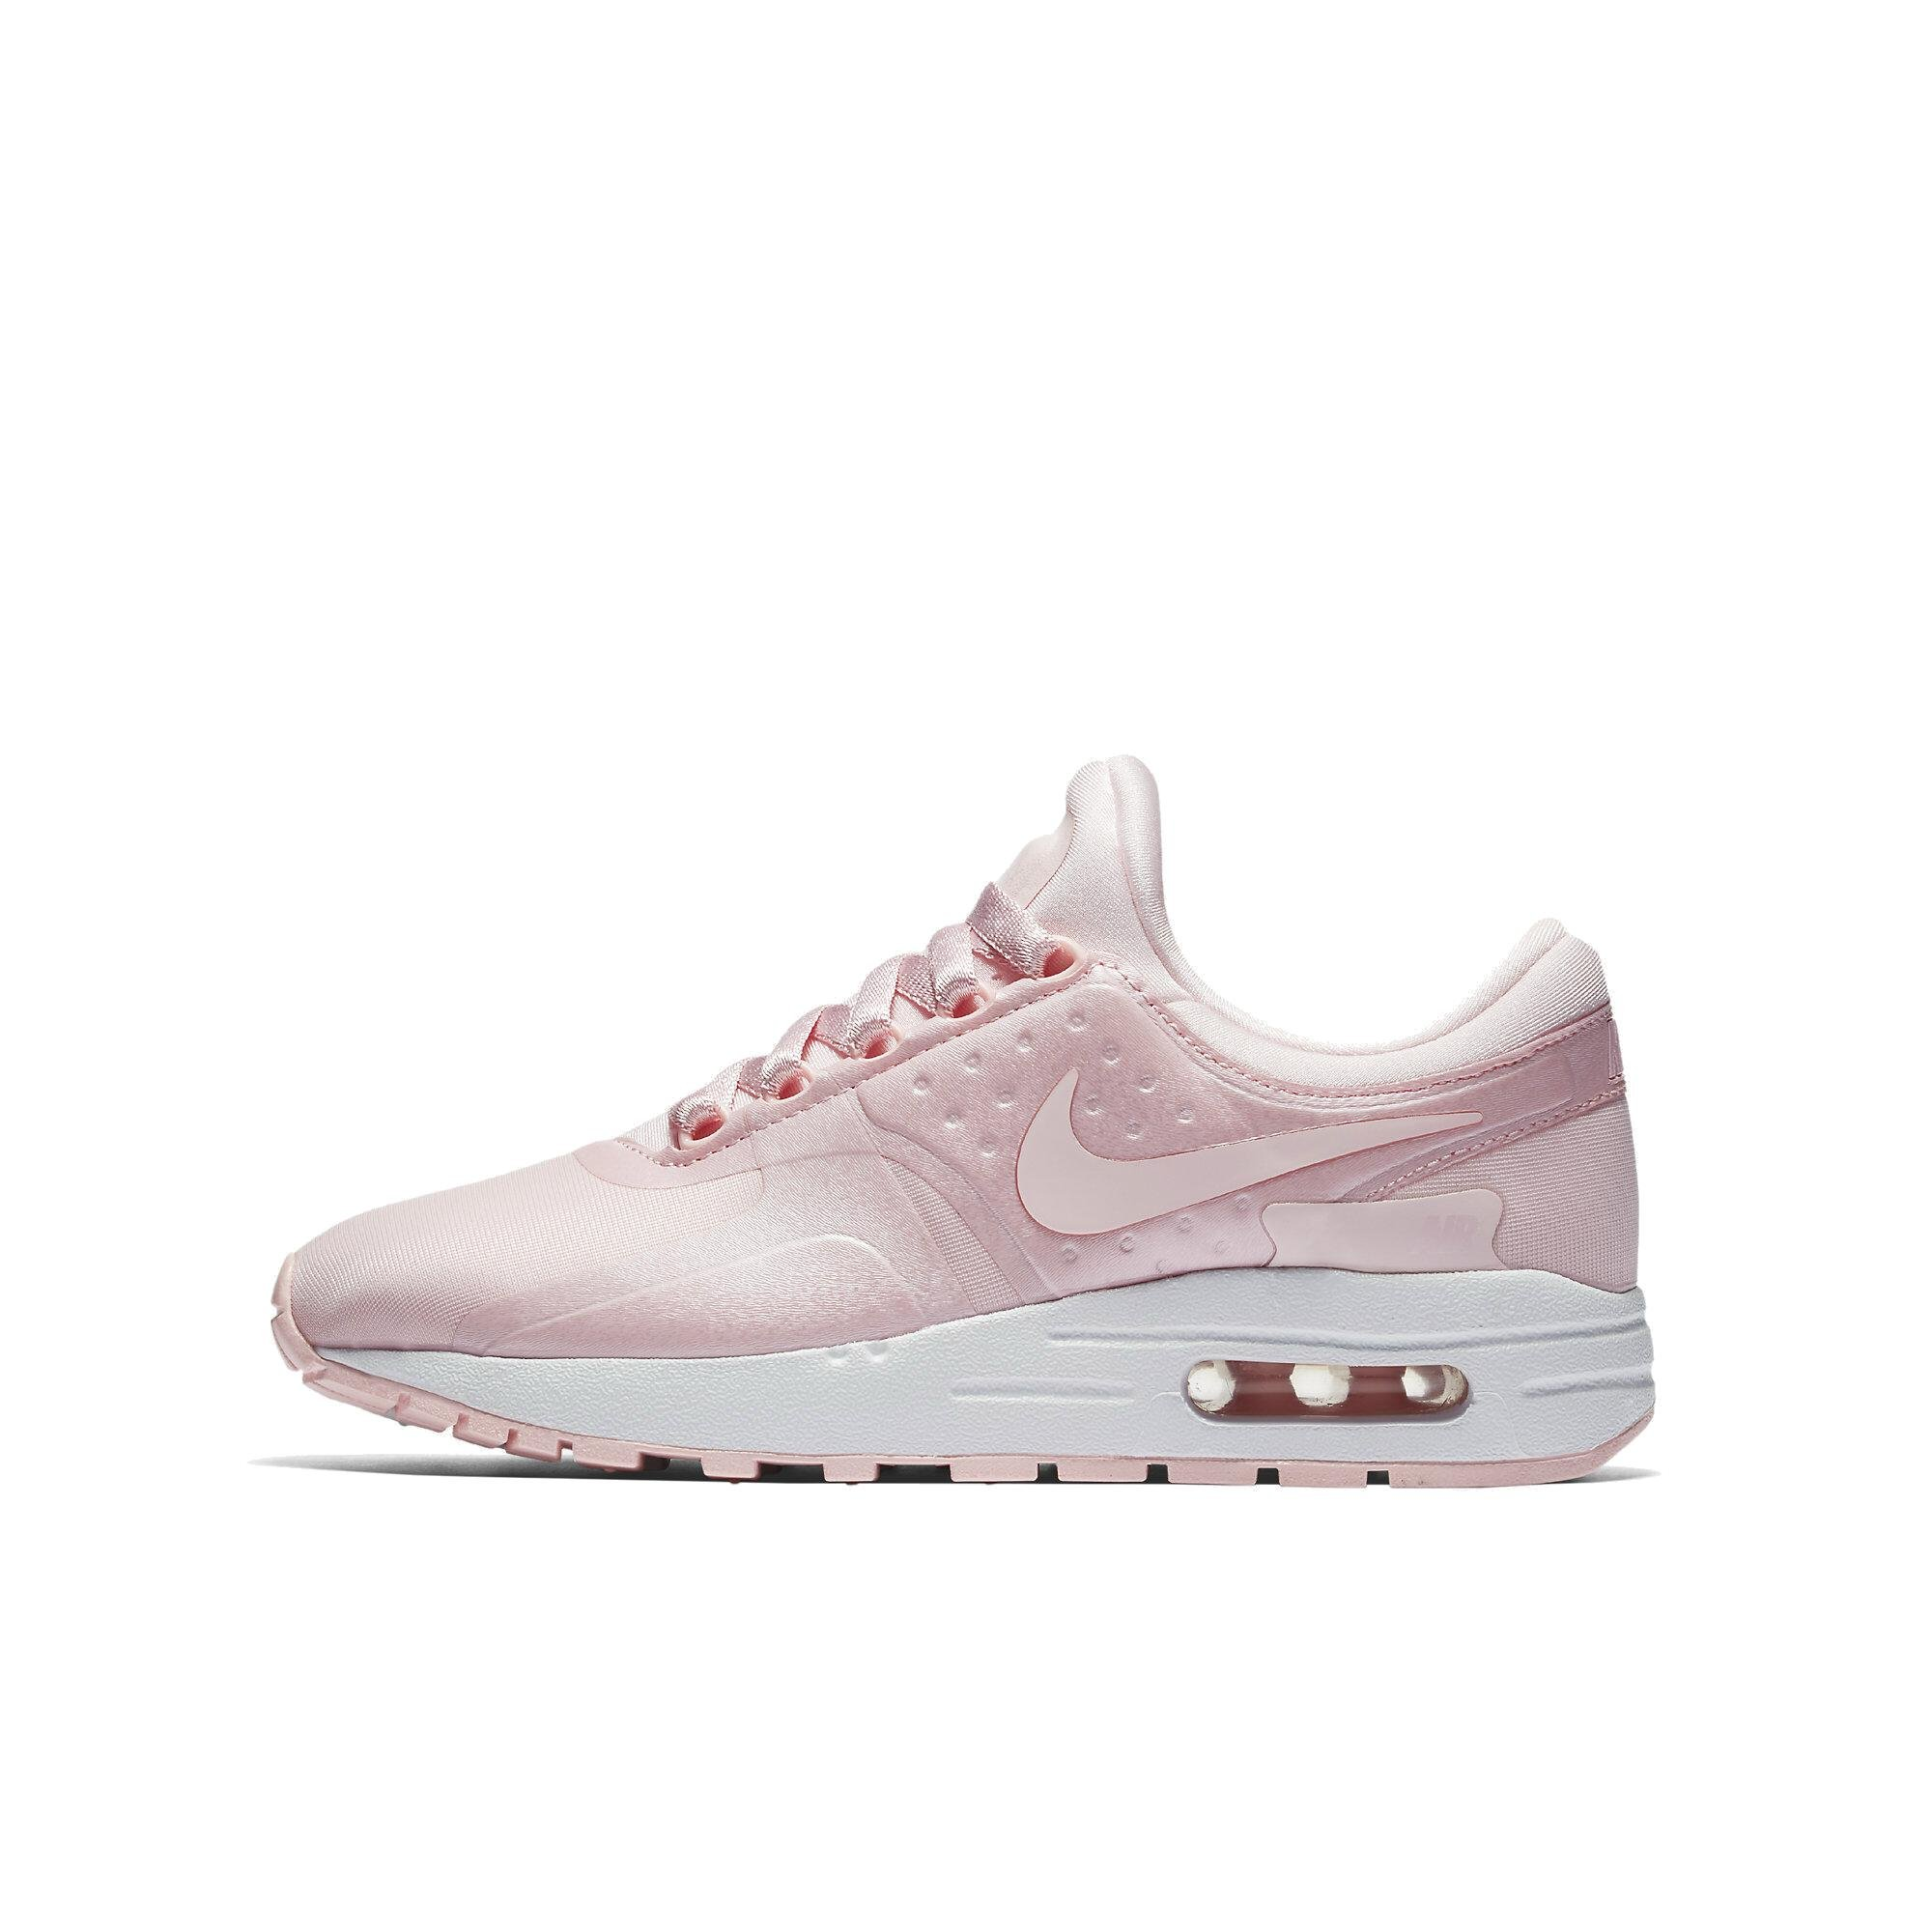 brand new e299d fbbaf Galleon - Nike Air Max Zero SE GS Running Trainers 917863 Sneakers Shoes  (UK 5 US 5.5Y EU 38, Prism Pink White 600)